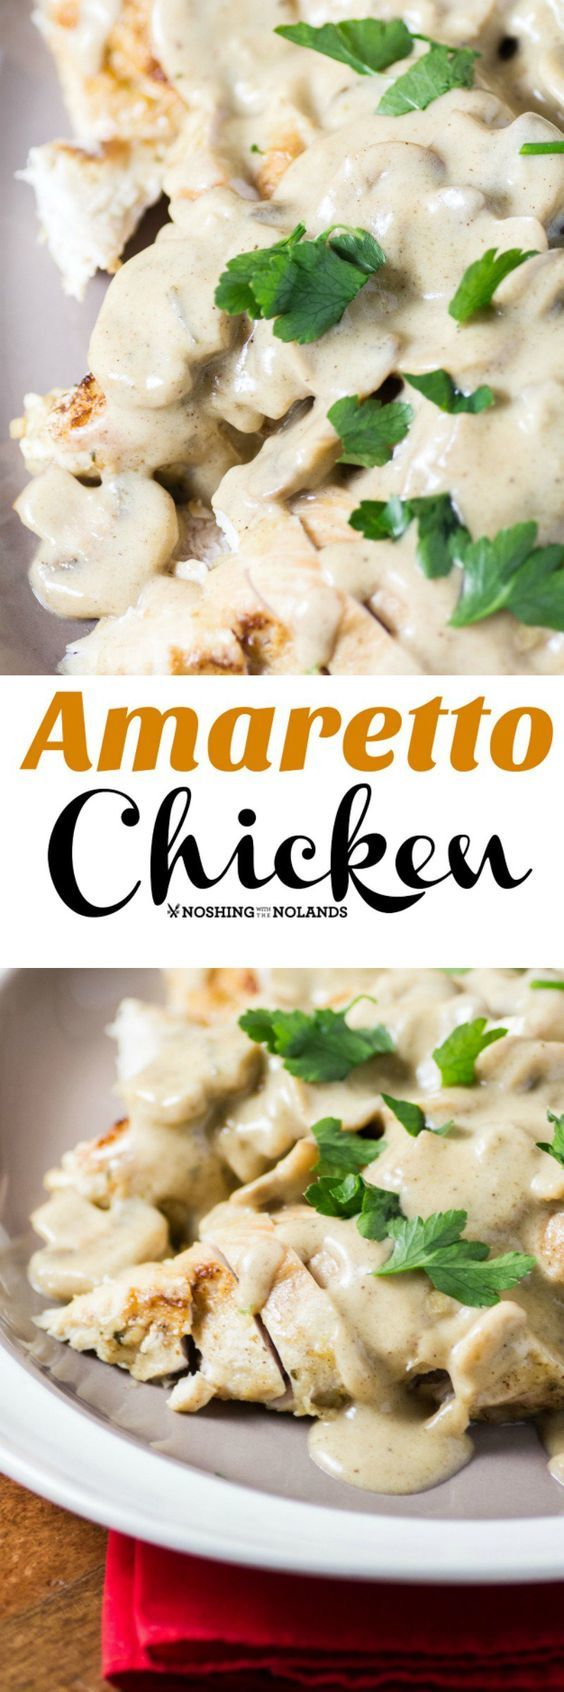 Amaretto Chicken by Noshing With The Nolands is elegant yet easy to make. Serve this scrumptious dish to guests or any day of the week!